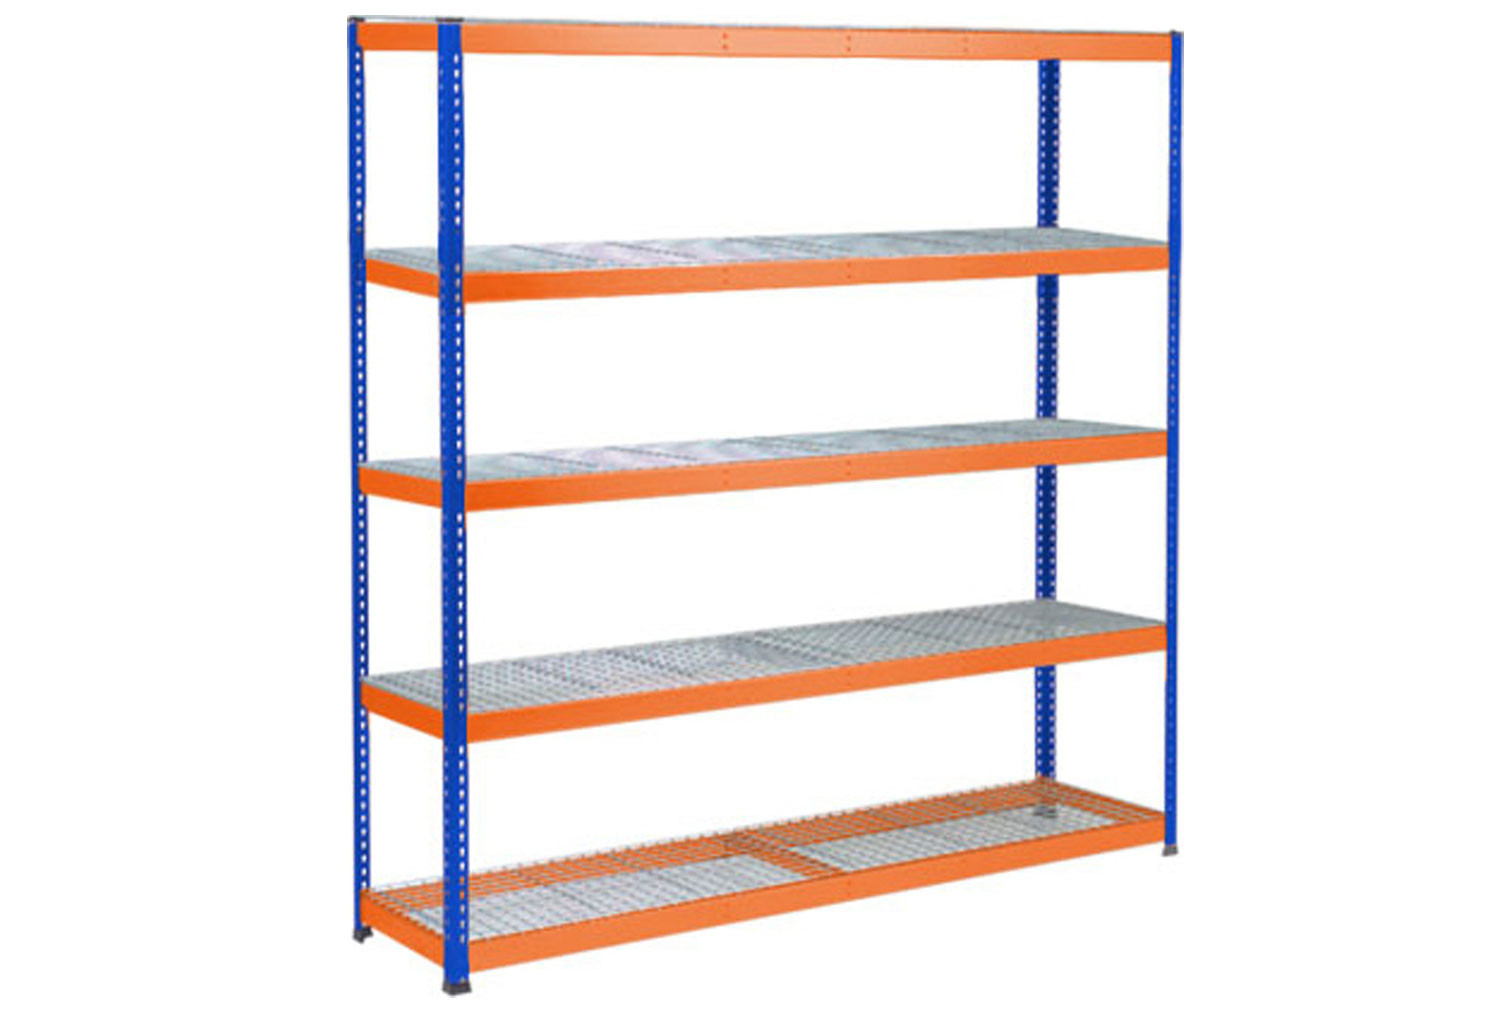 Rapid 1 Heavy Duty Shelving With 5 Wire Mesh Shelves 2440wx1980h (Blue/Orange)